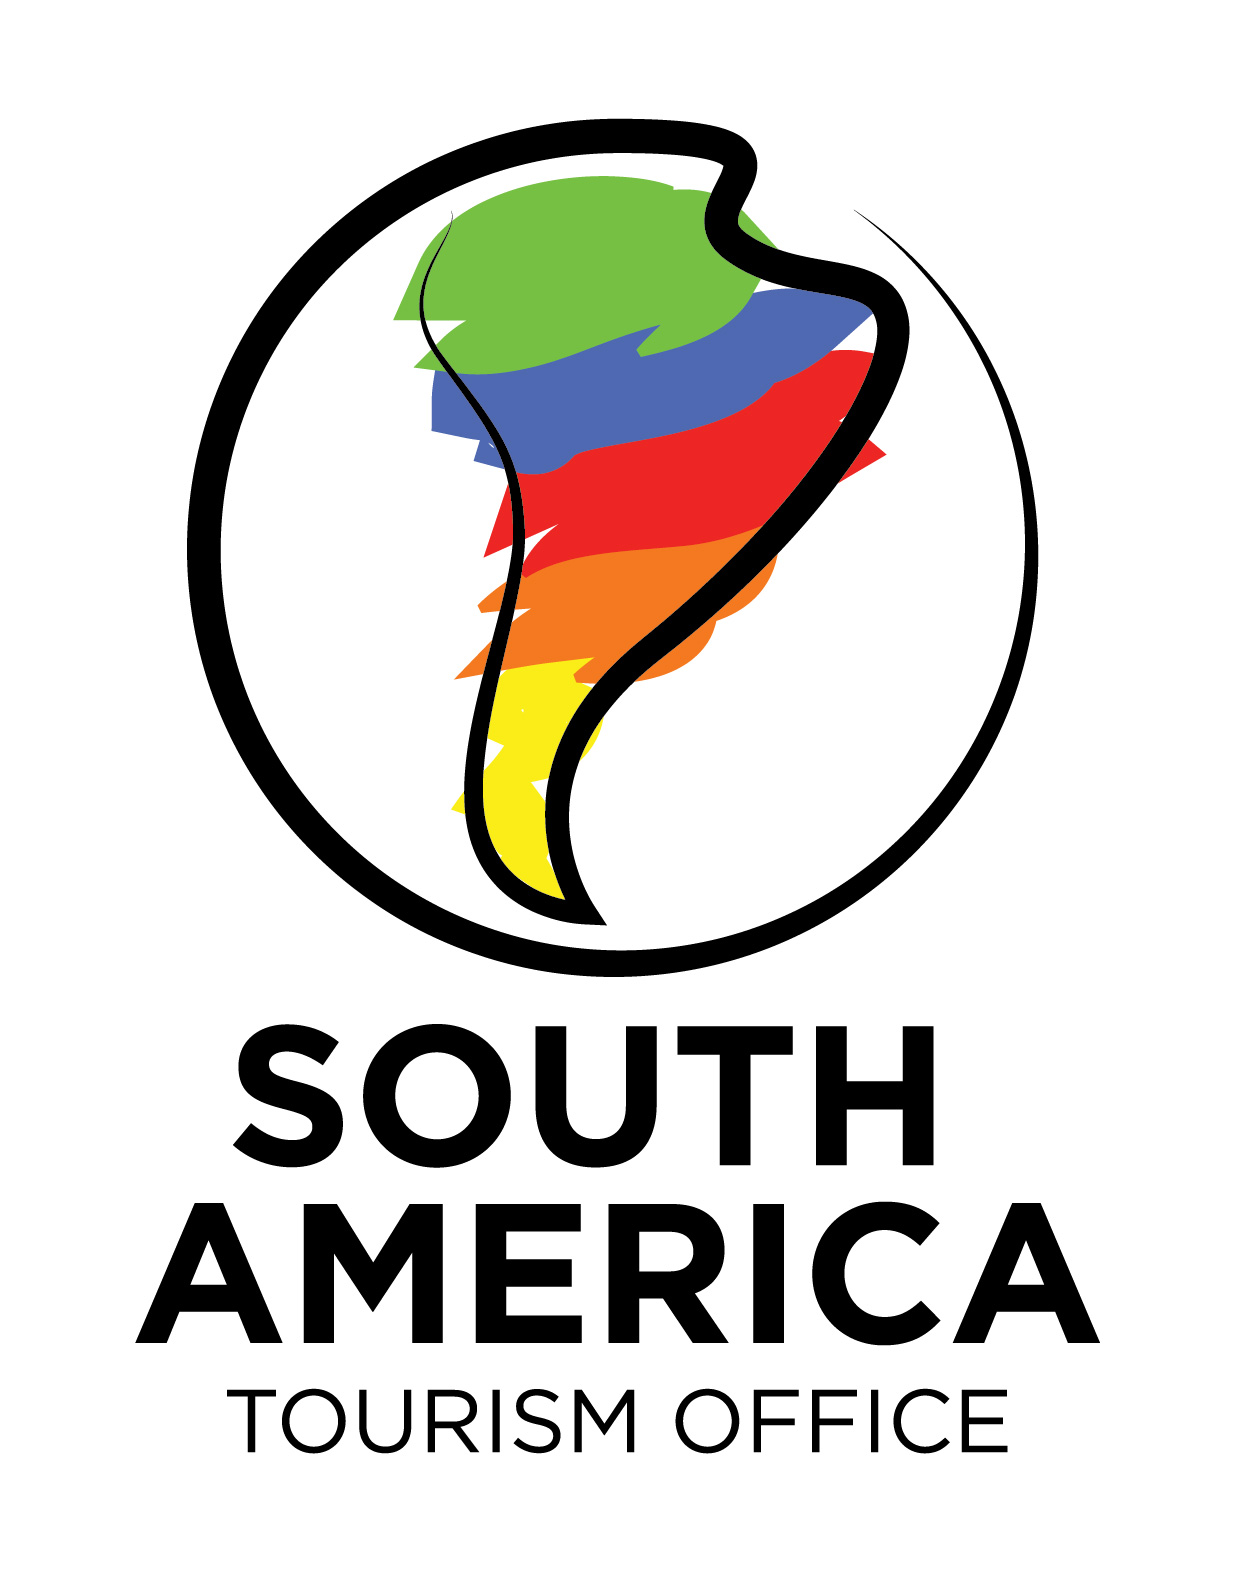 South America Tourism Office Logo